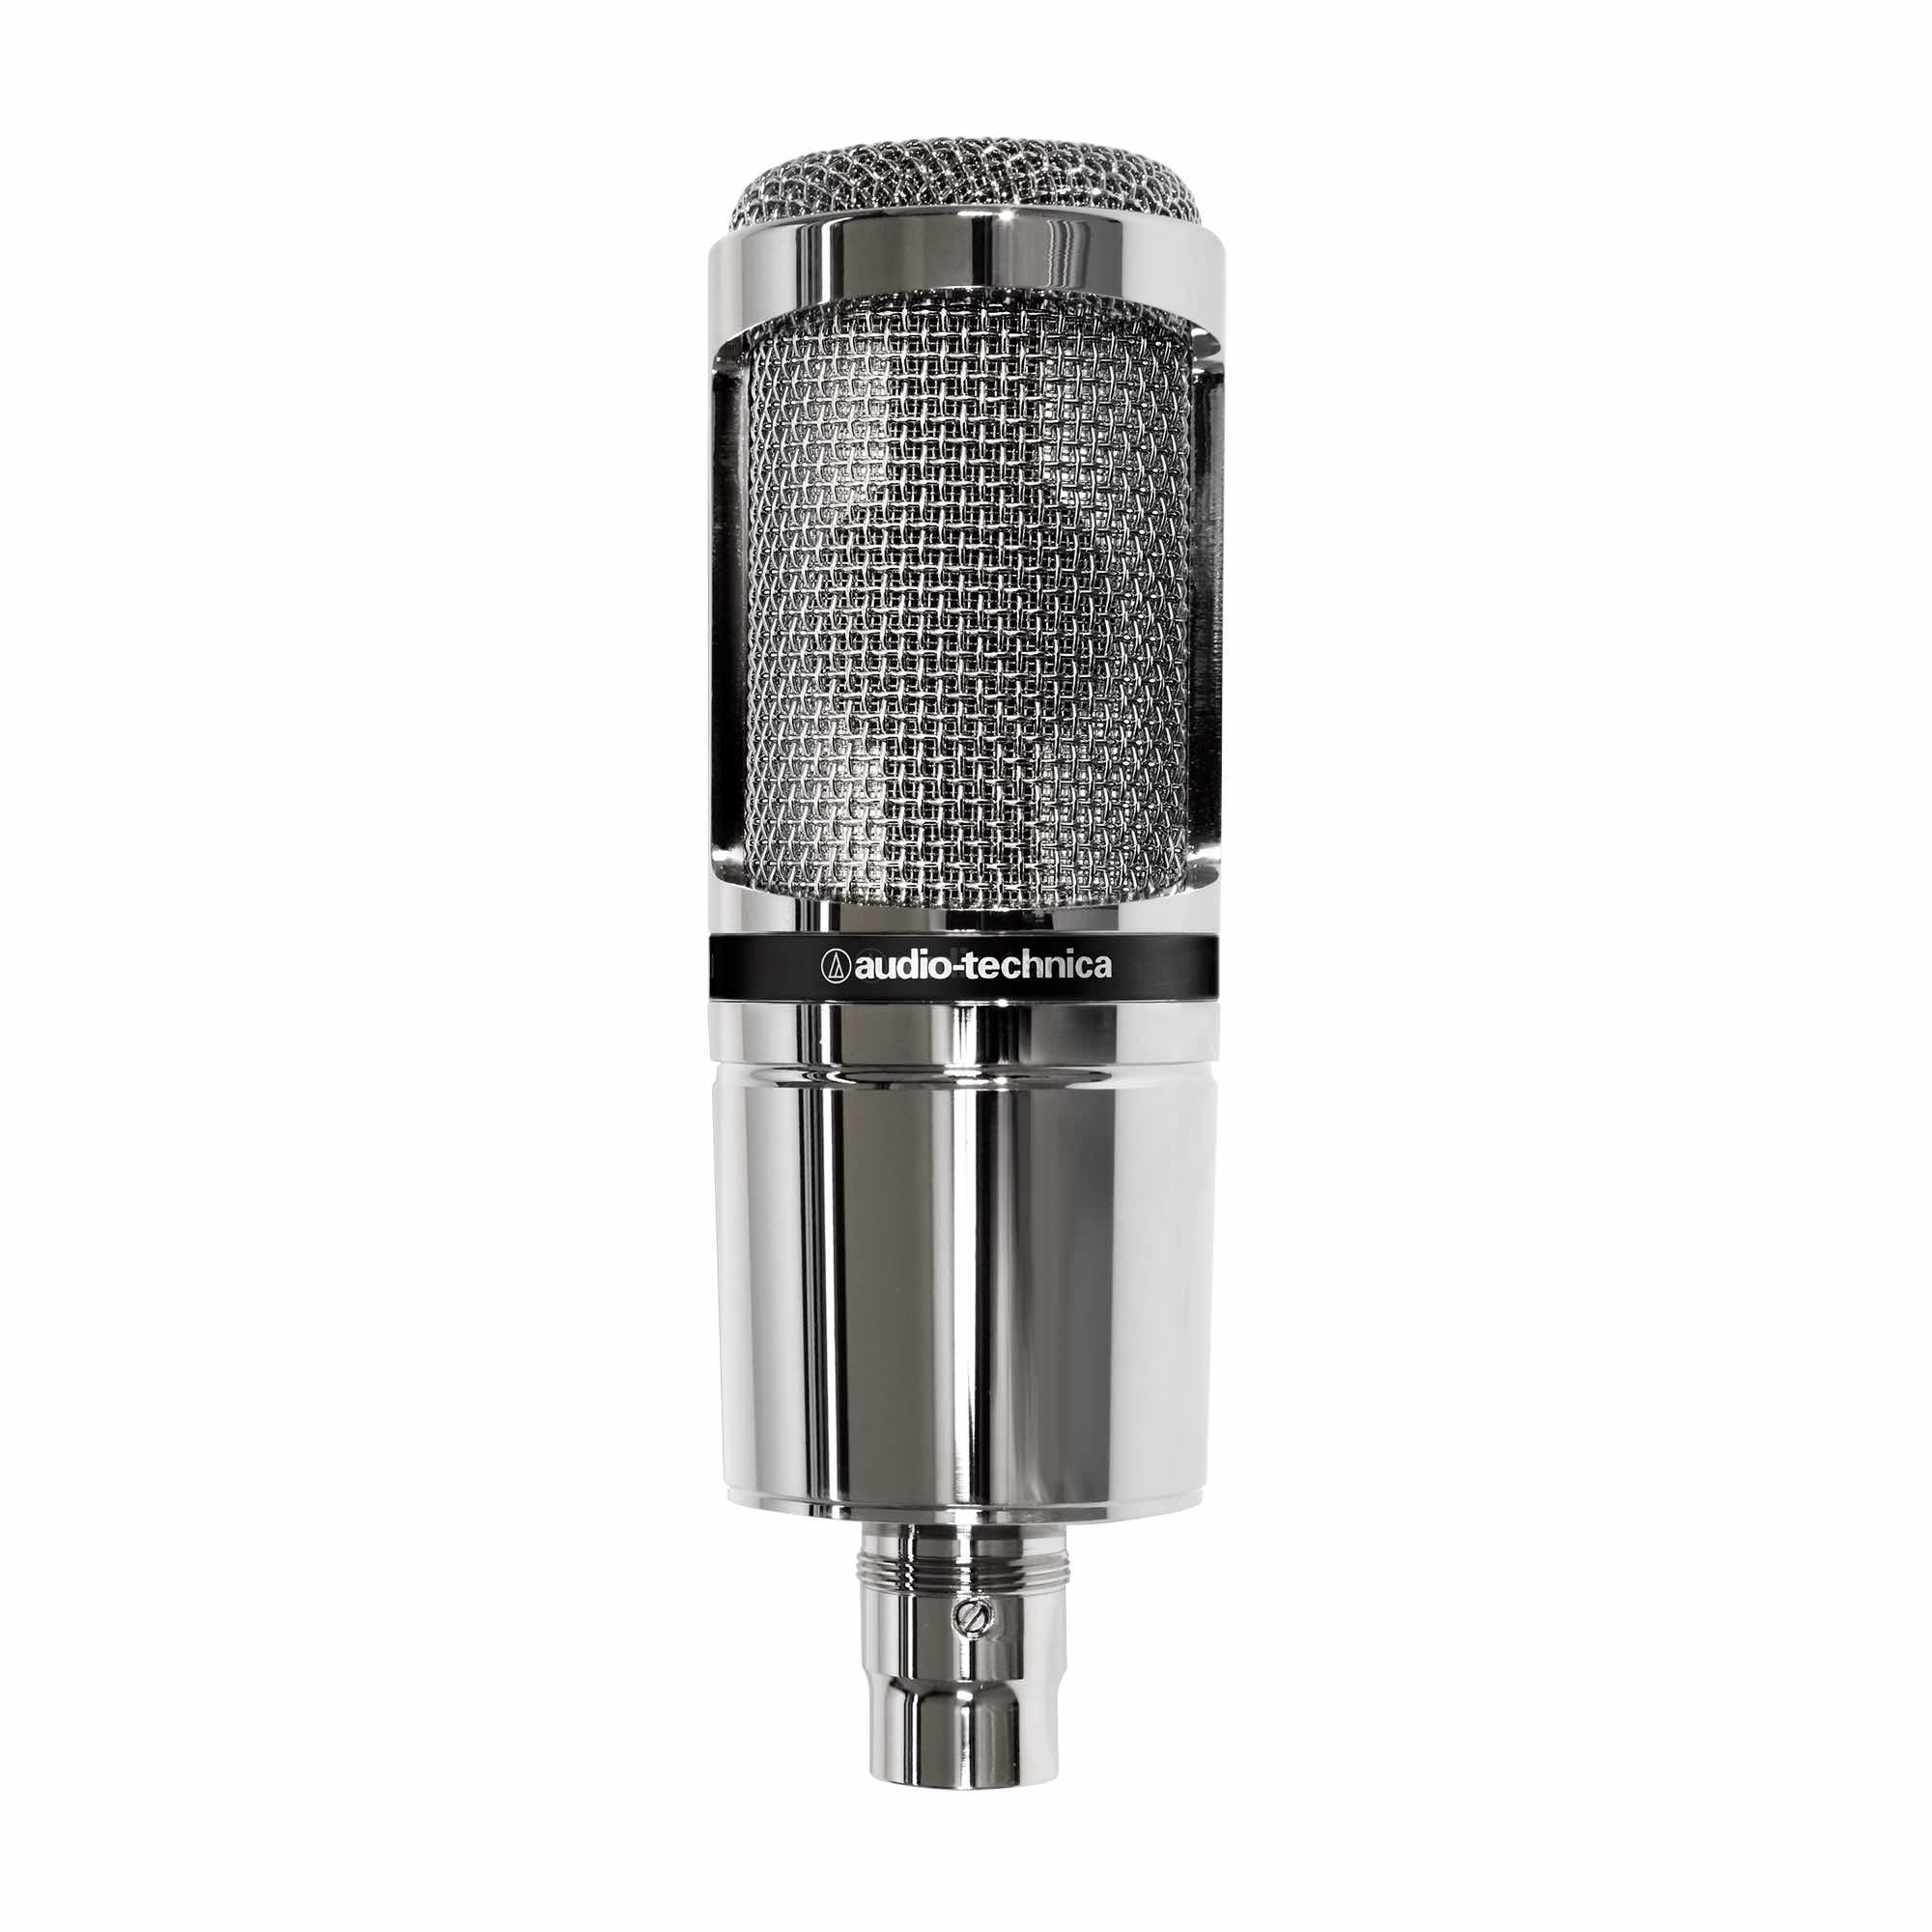 Audio-Technica AT2020 mic recording home studio sisme strumenti musicali